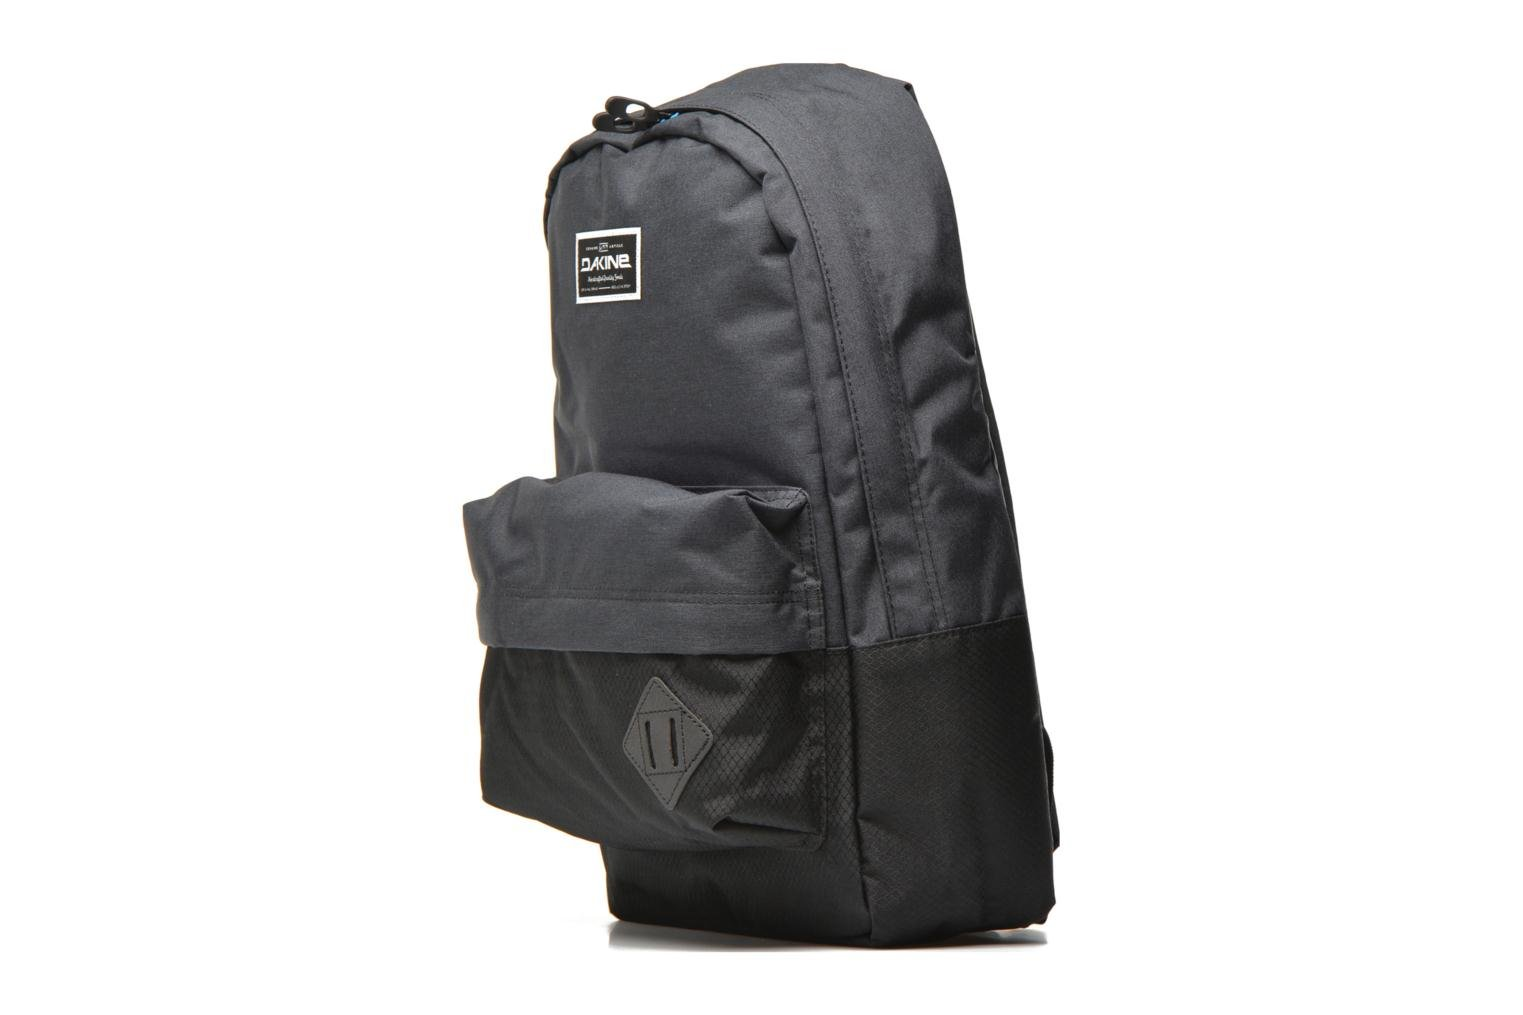 365 PACK BACKPACK Tabor